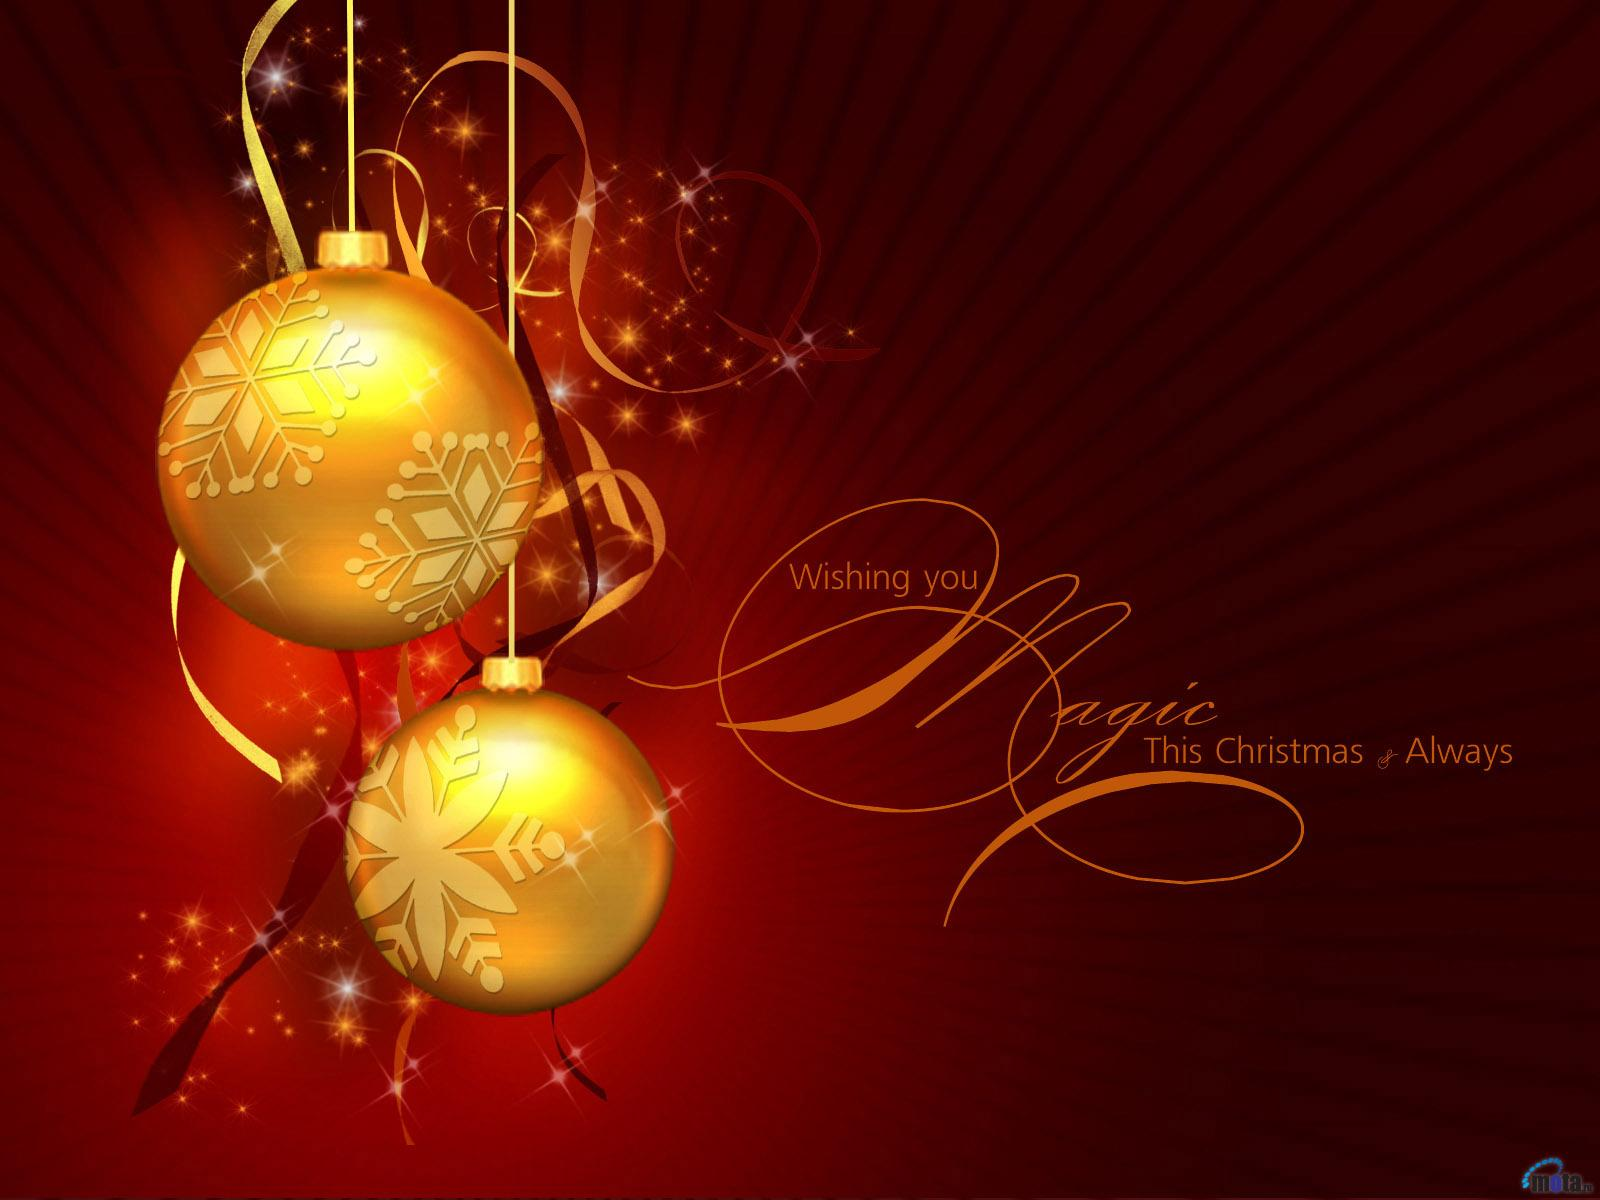 Happy New Year 2019 Wishes Images Wallpapers FREE